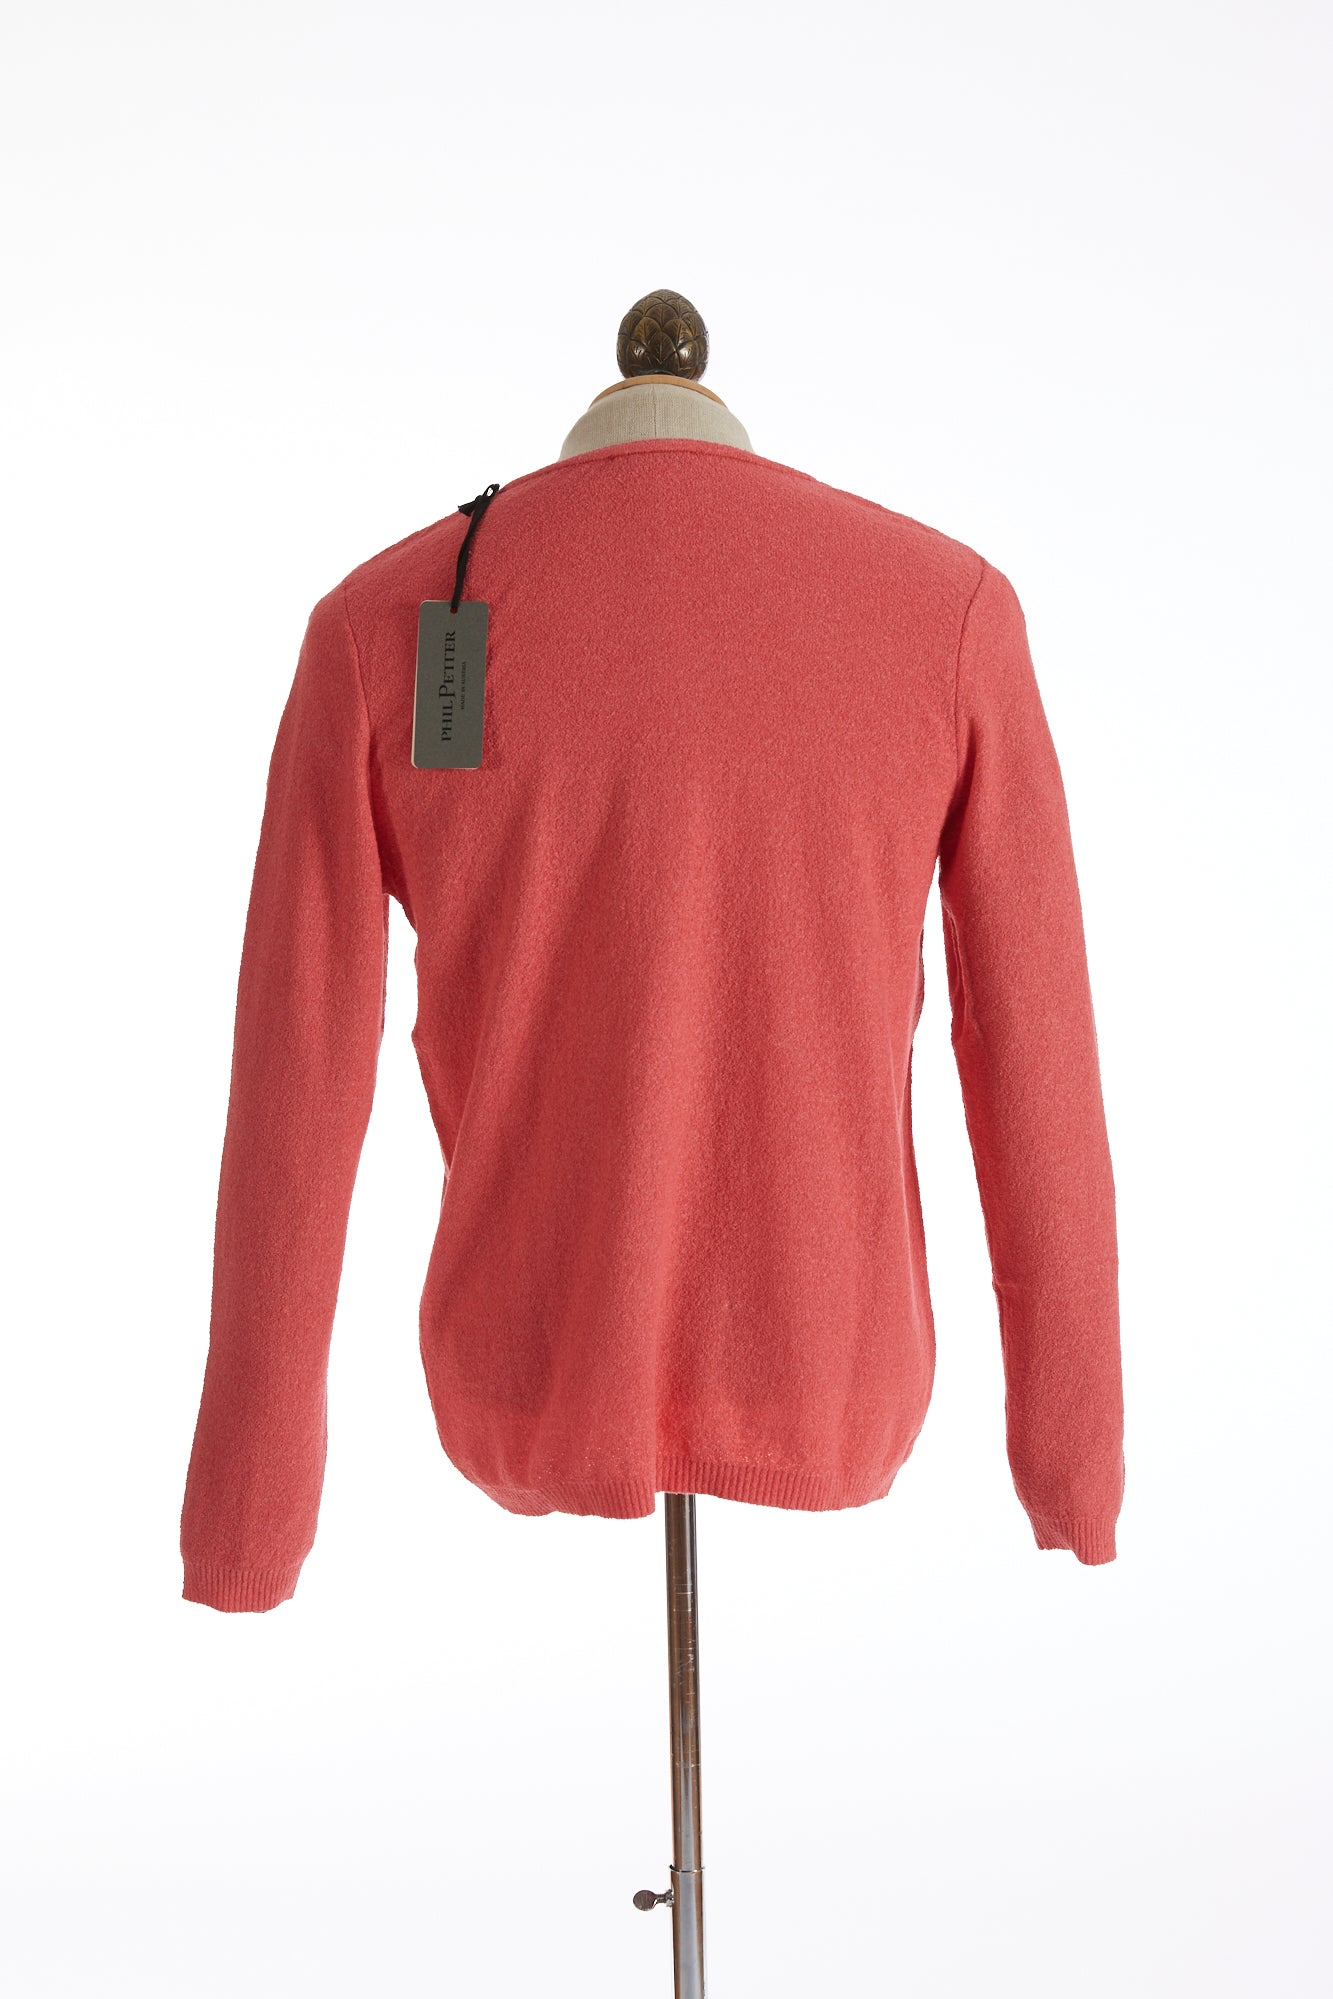 Phil Petter Coral Terry Crewneck Sweater Back